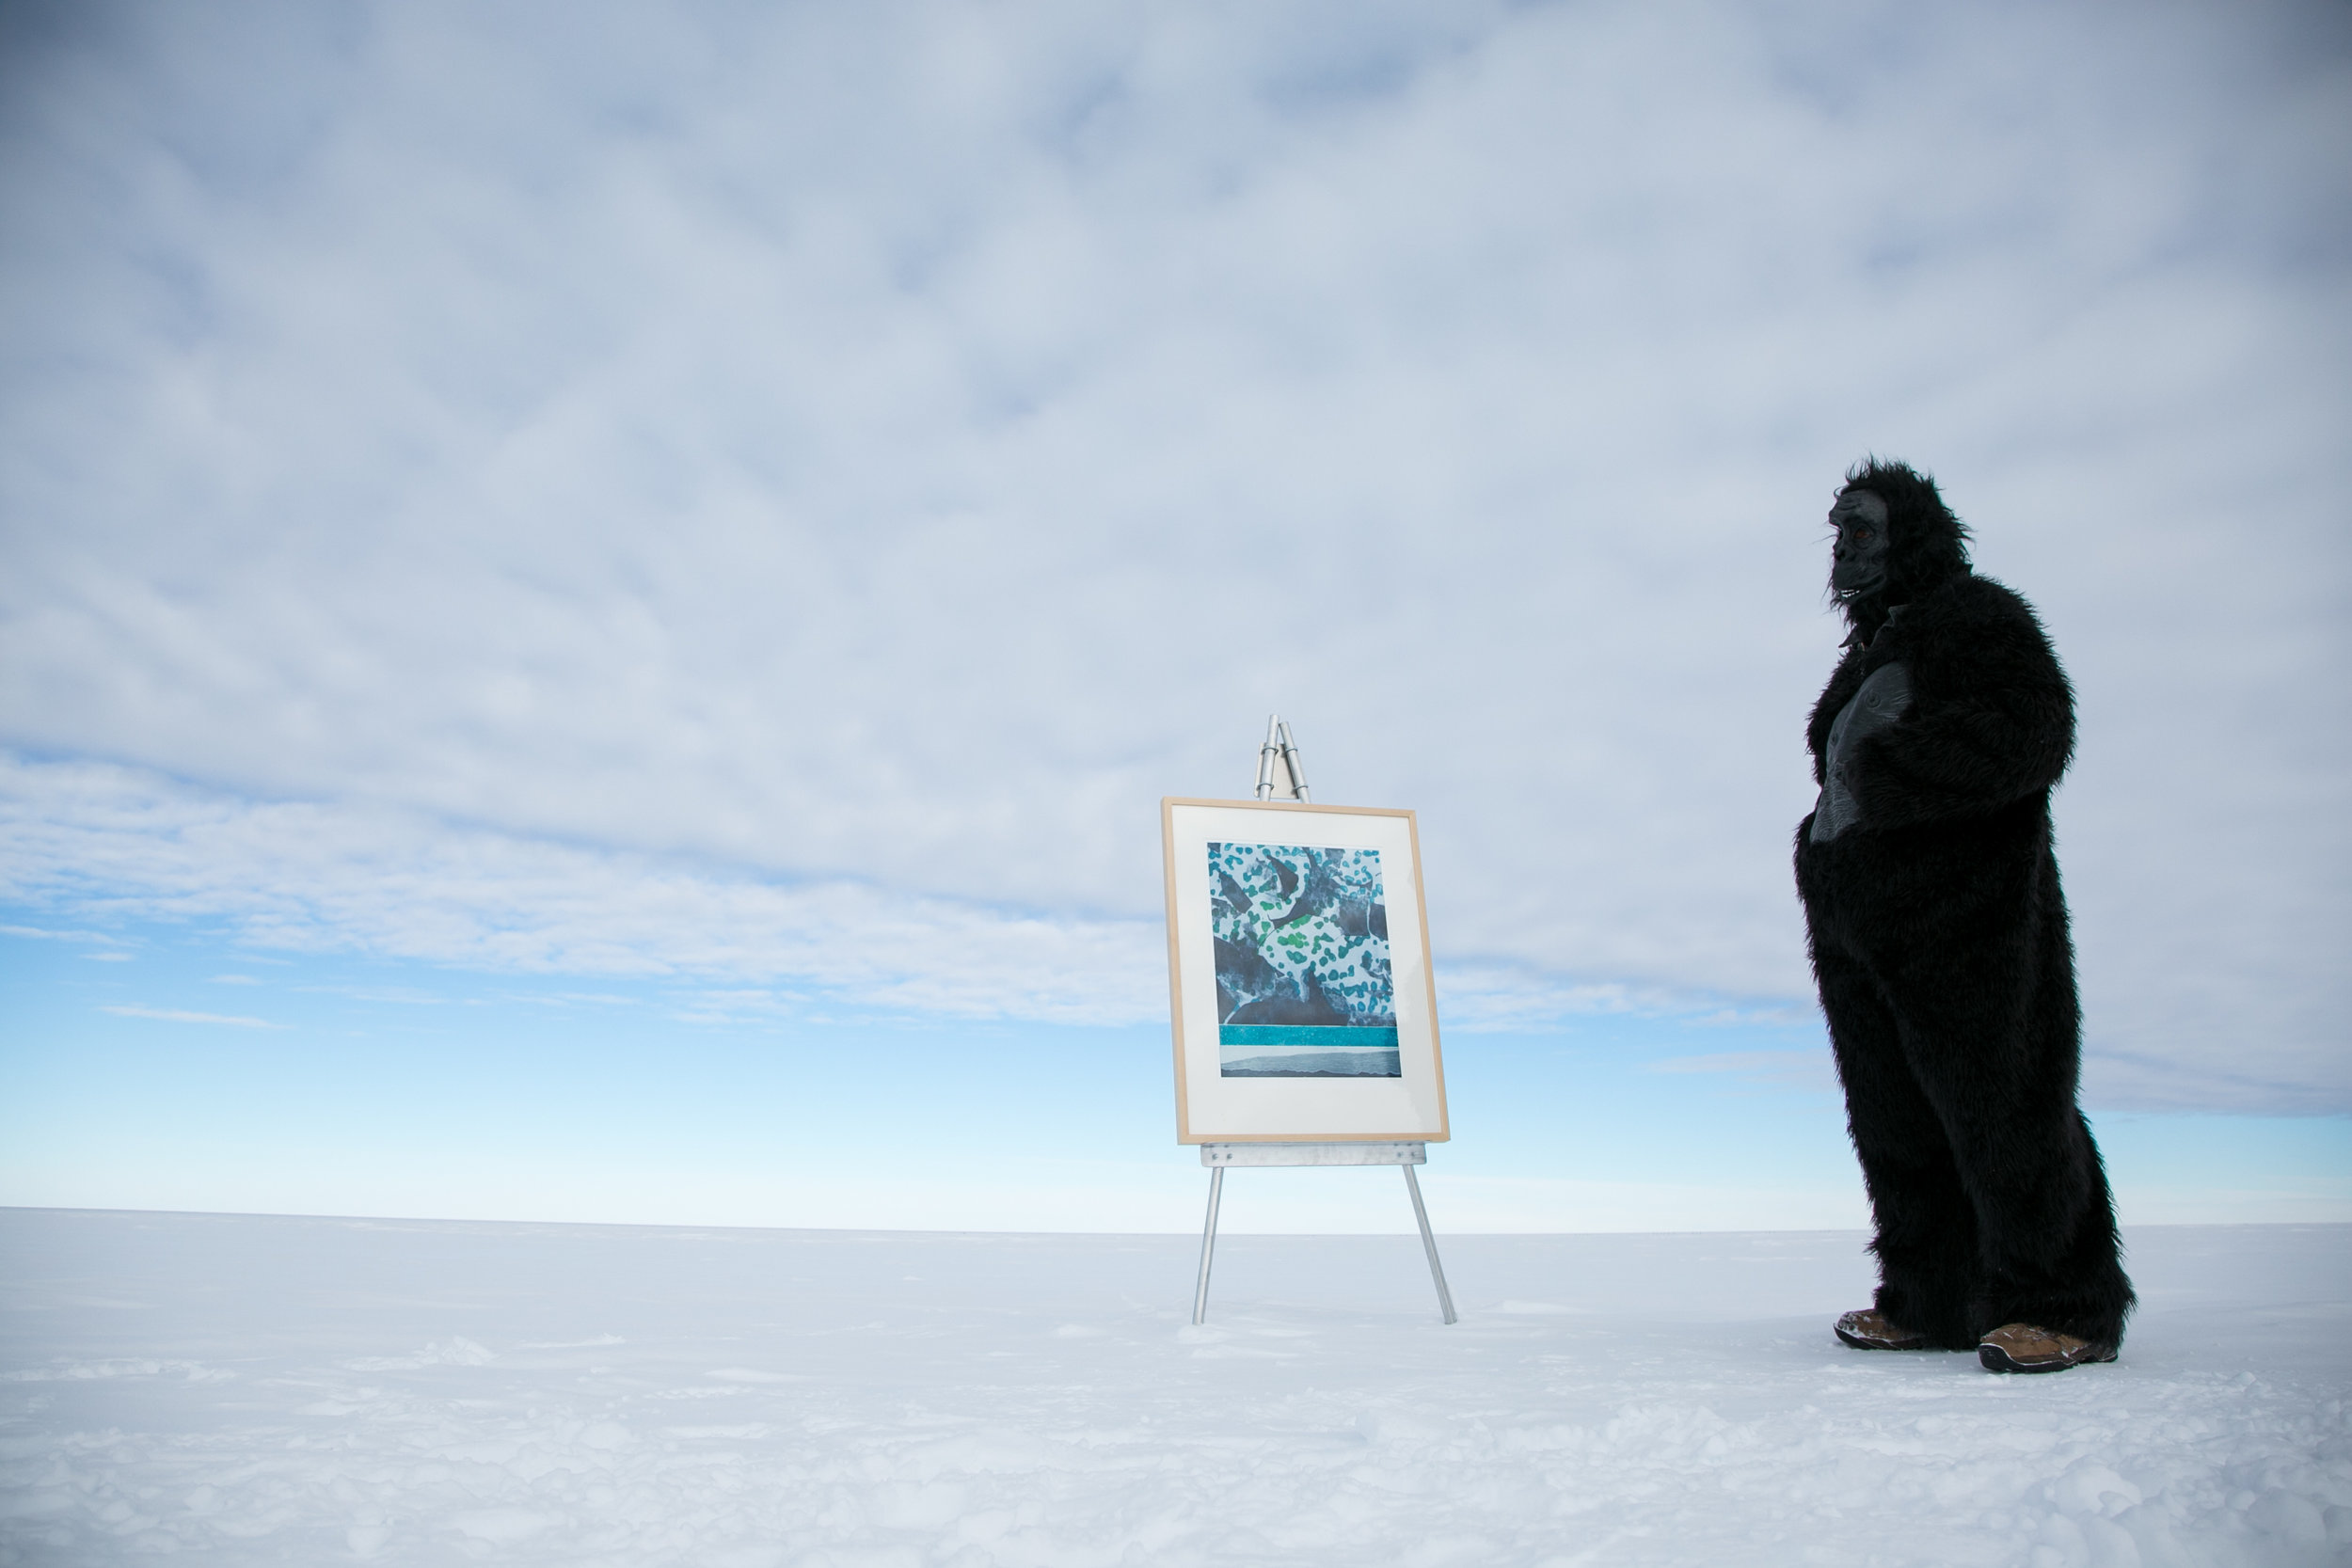 A rare sighting of the Antarctic Gorilla, known to be attracted by paintings and prints